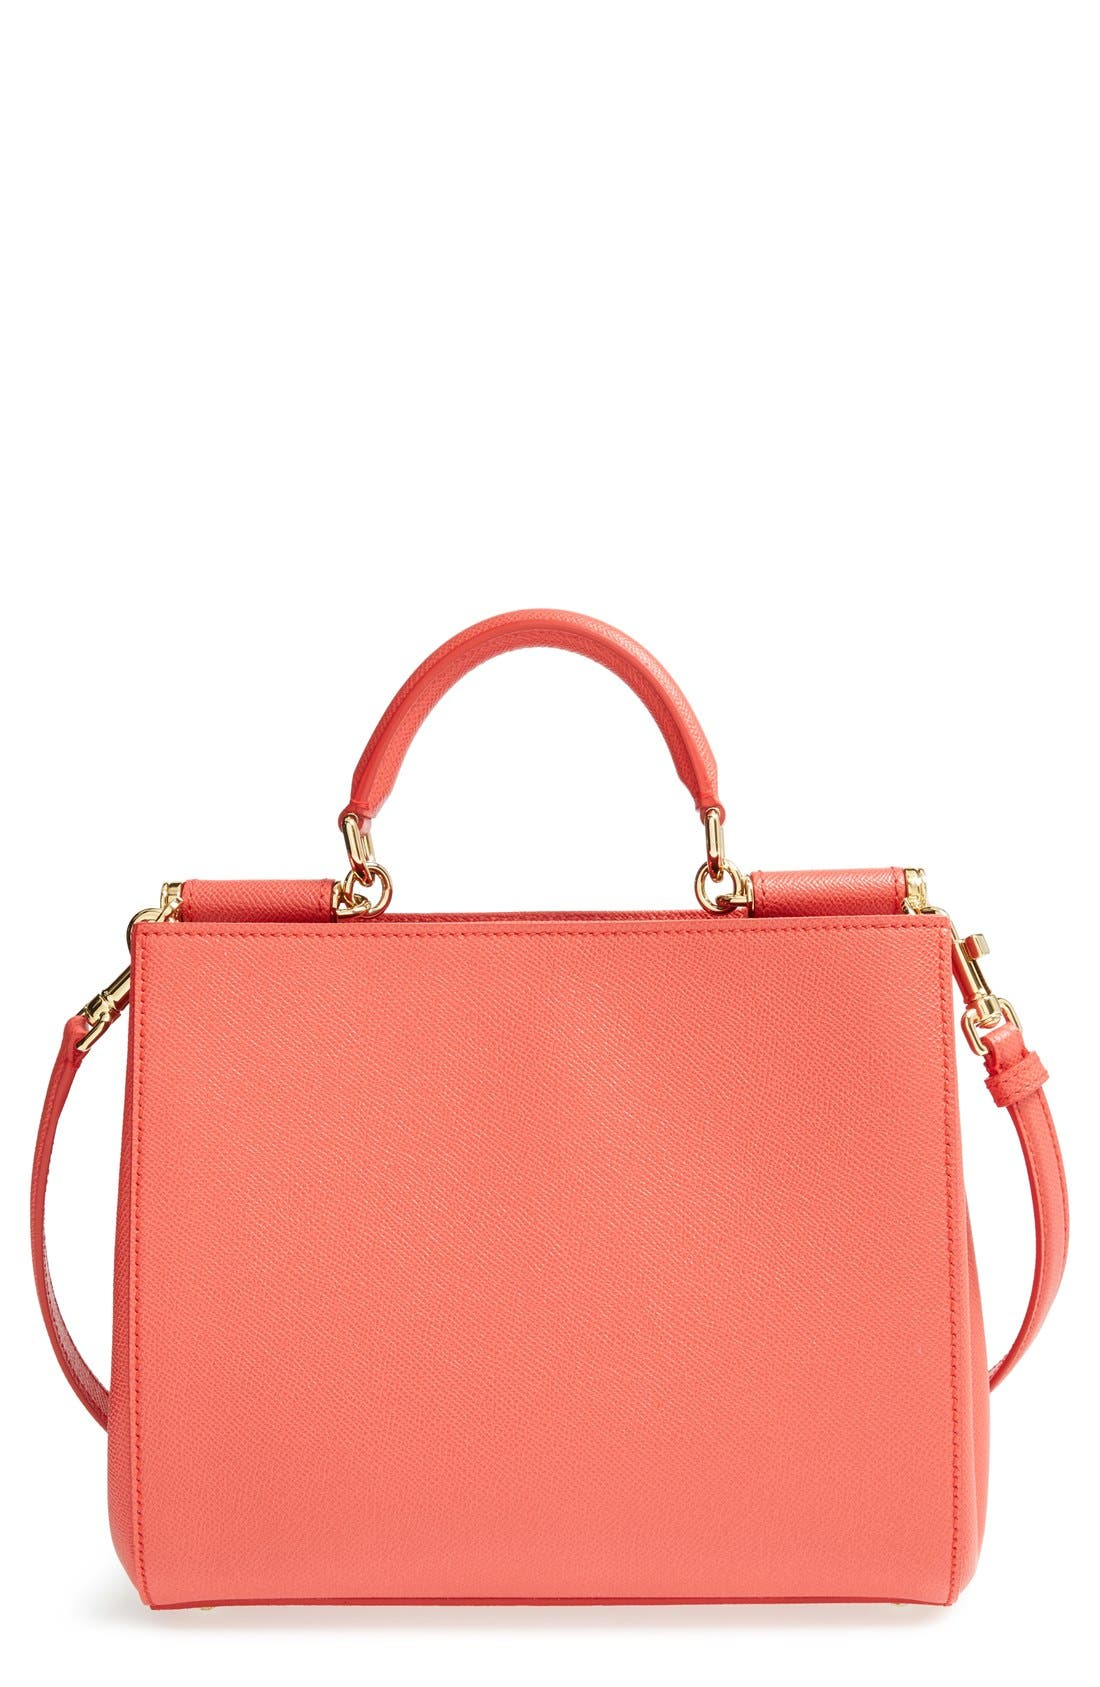 Main Image - Dolce&Gabbana 'Small Miss Sicily - East West' Tote